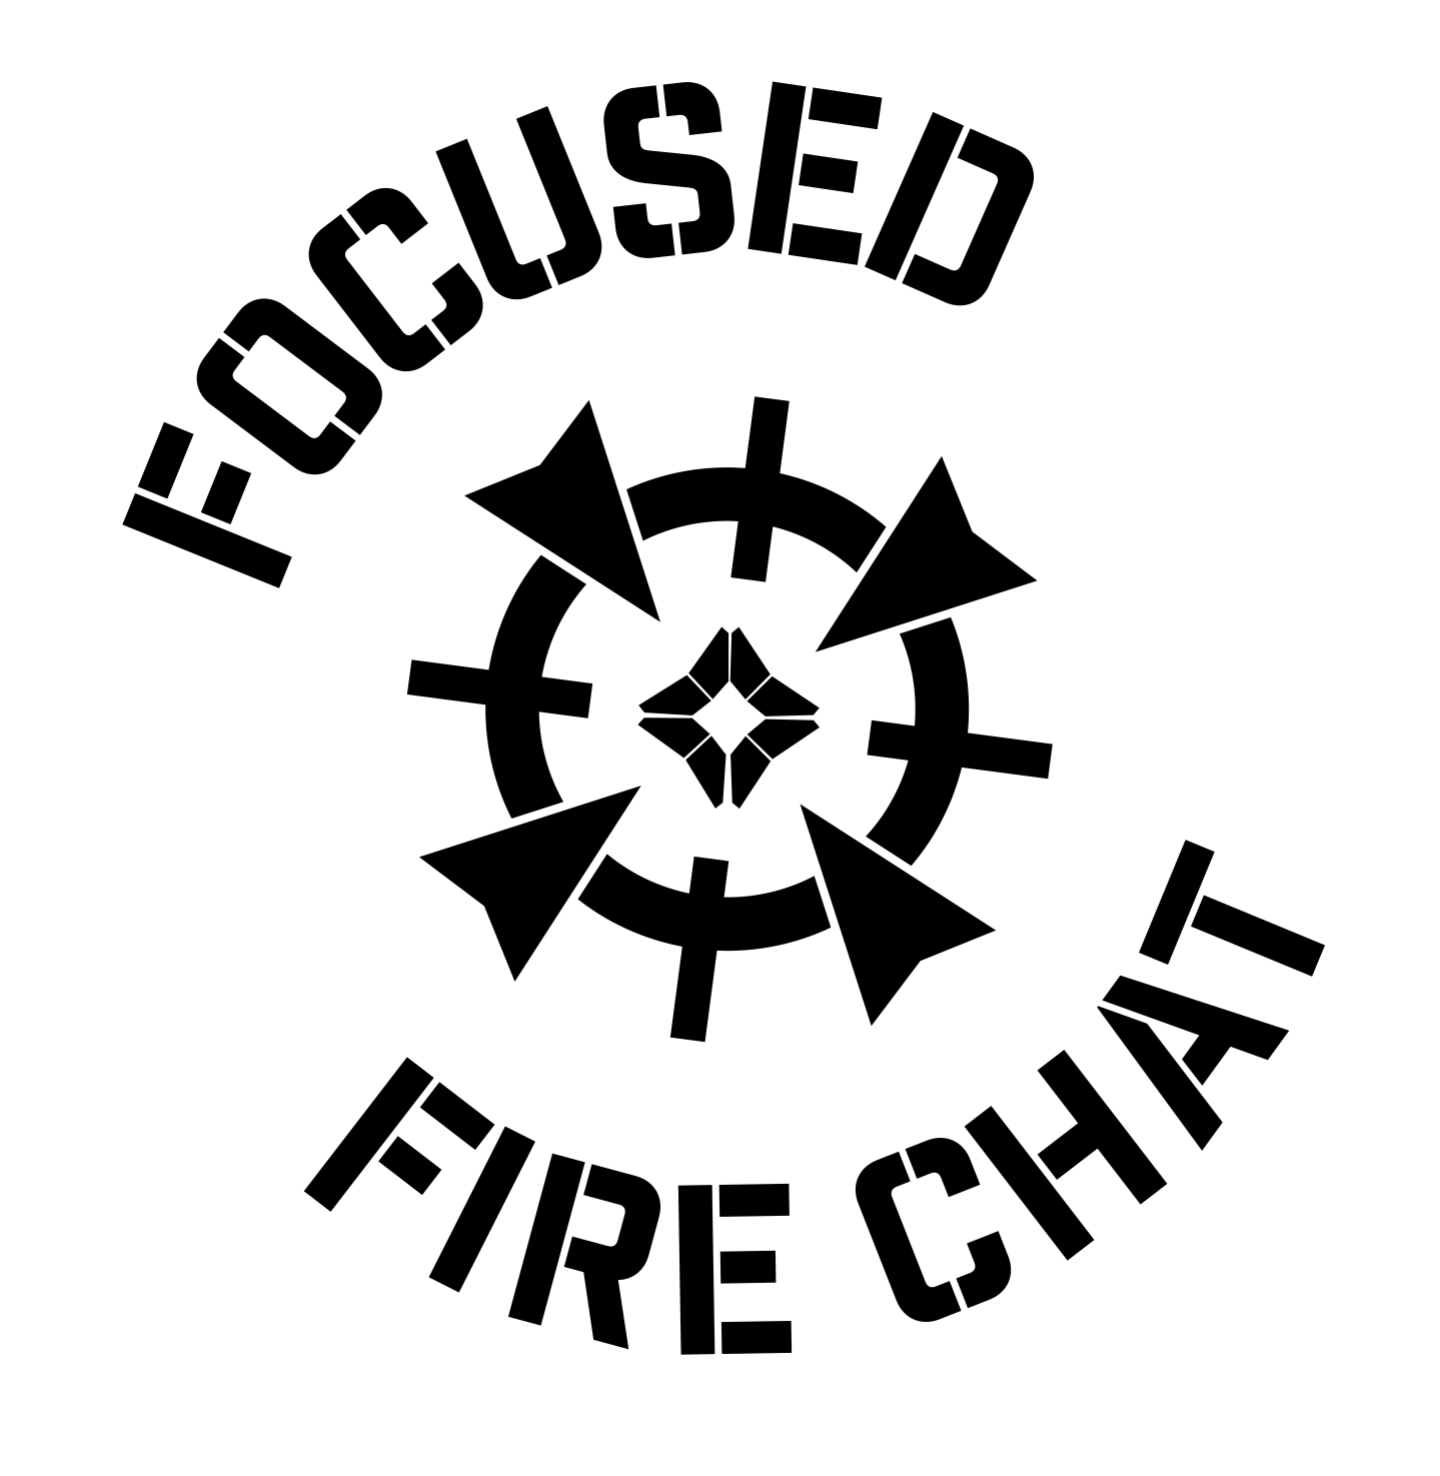 focused fire chat a destiny lore podcast by focused fire chat team Red Hat Thinking focused fire chat a destiny lore podcast